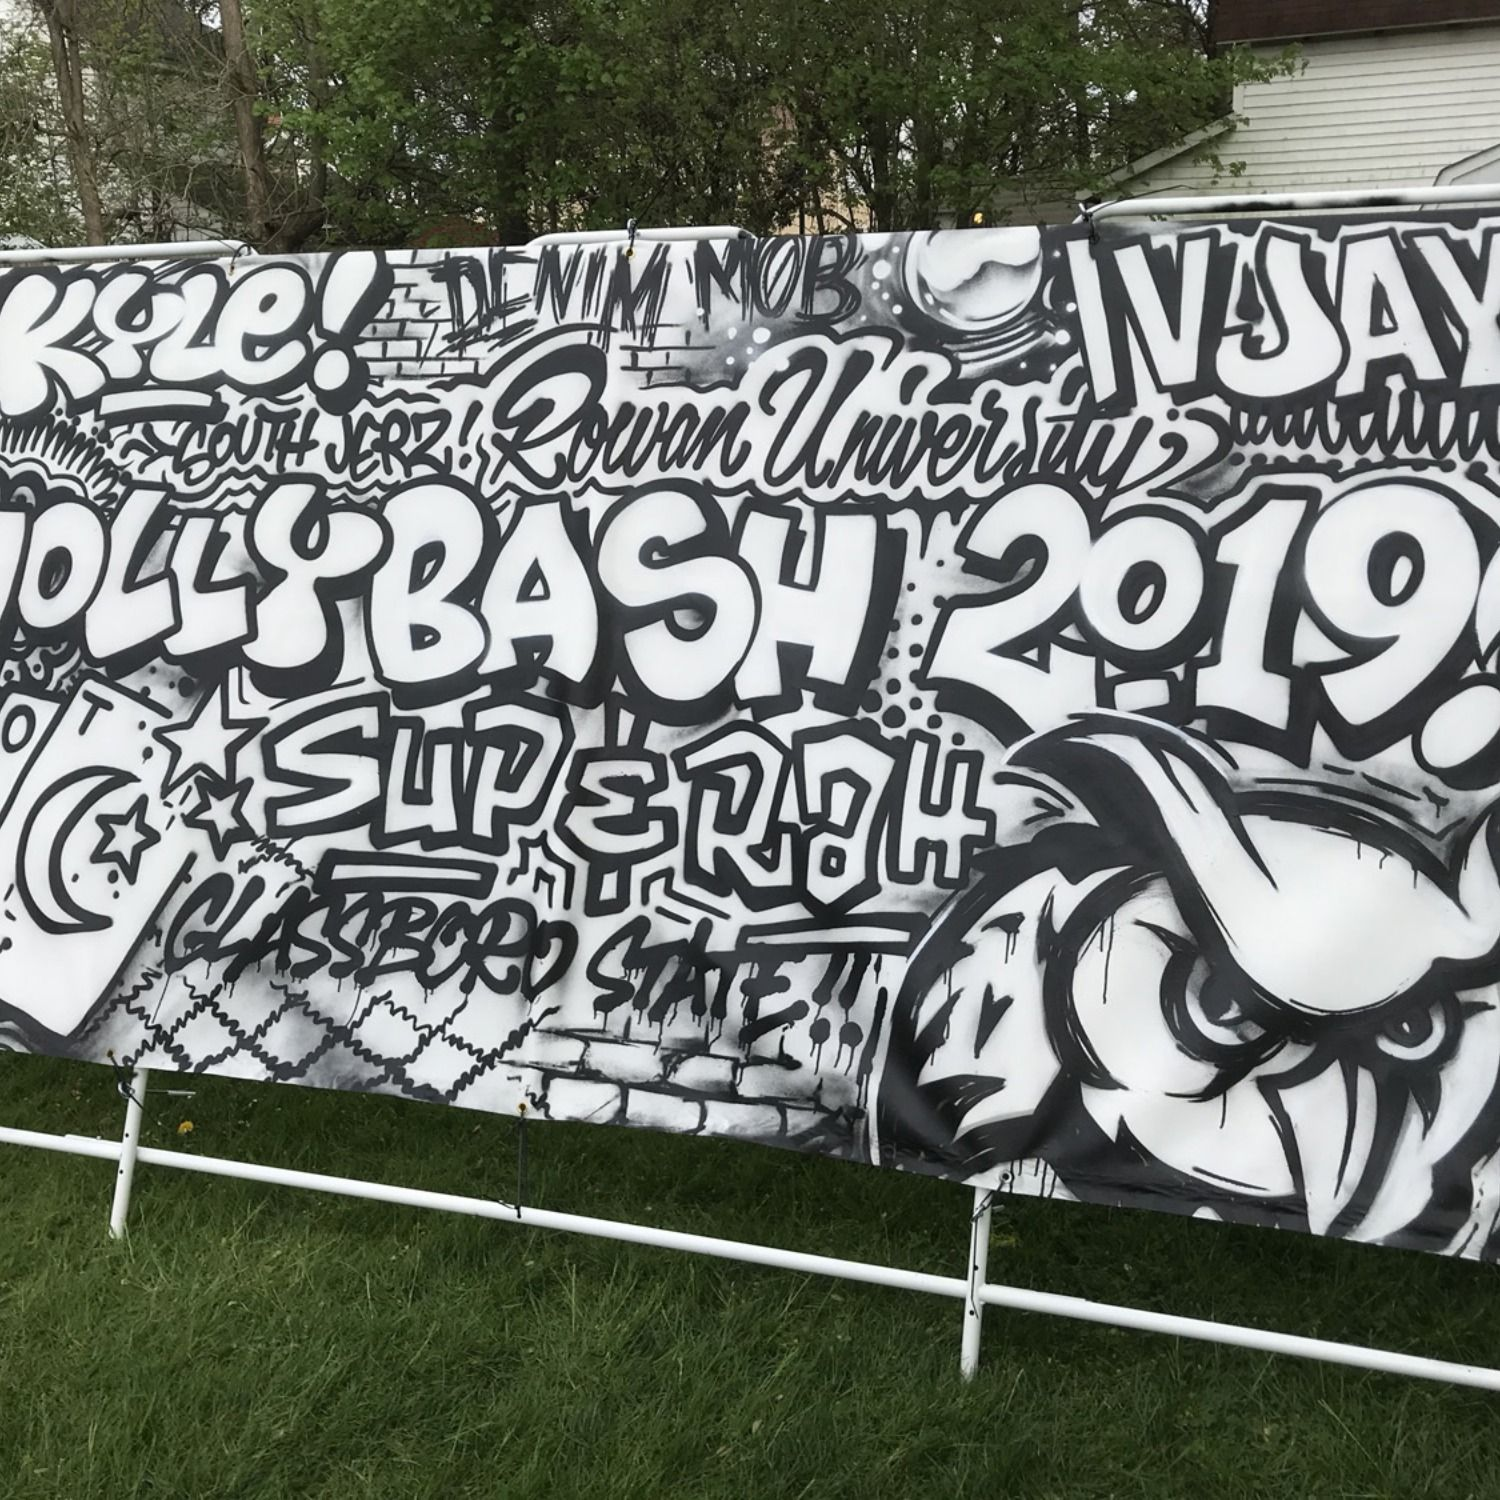 Coloring Book Mural Canvas For Music Festival At University Event In Nj Festival Paint Mural Mural Art